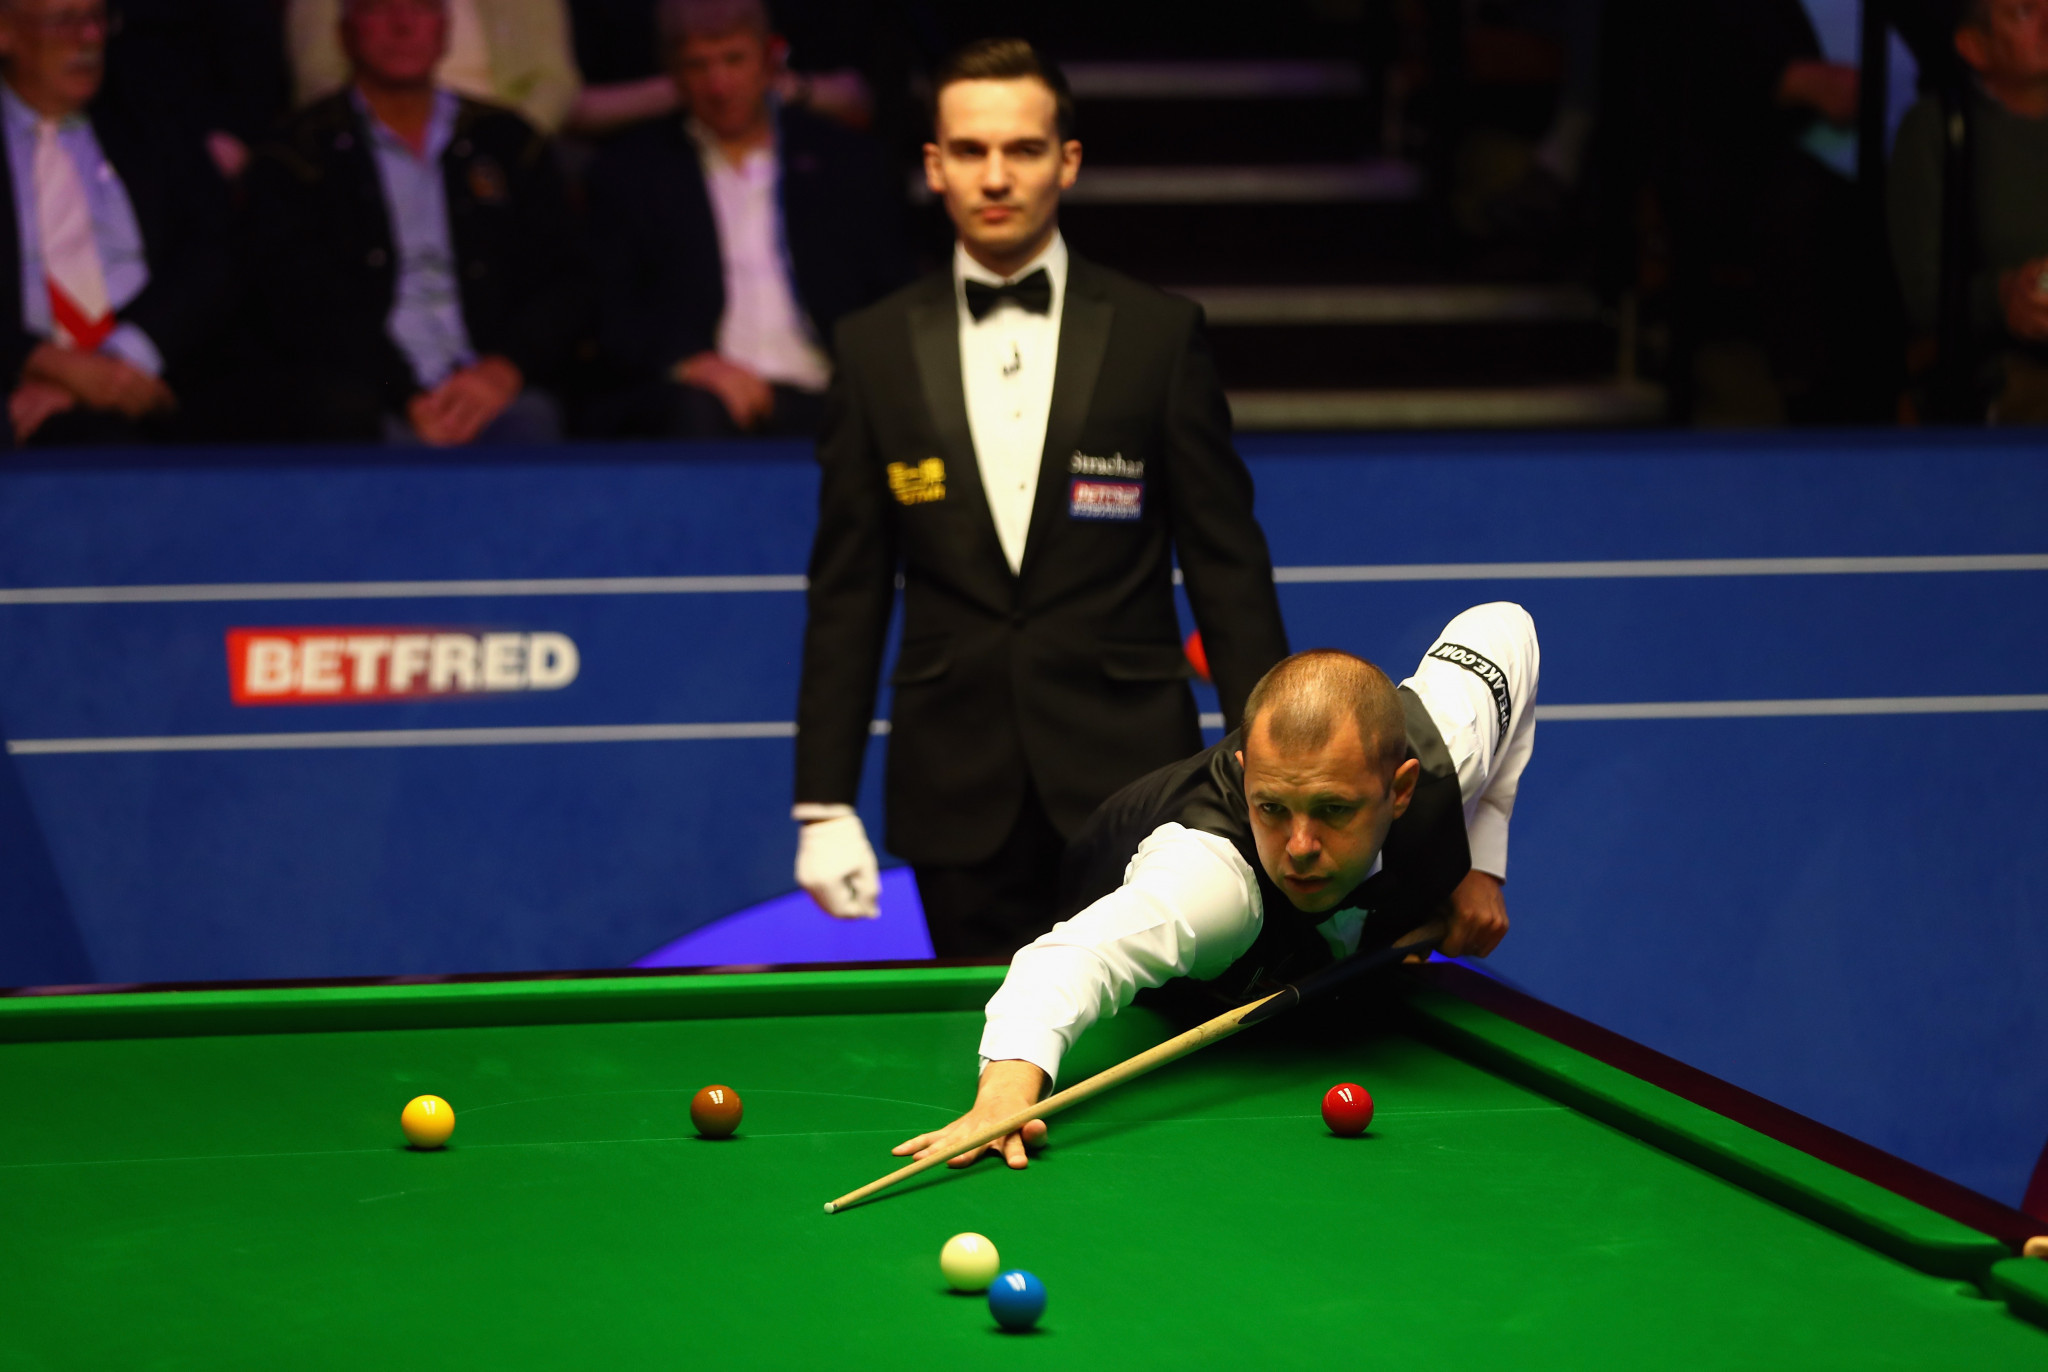 Barry Hawkins advanced to the semi-finals of the World Snooker Championship ©Getty Images